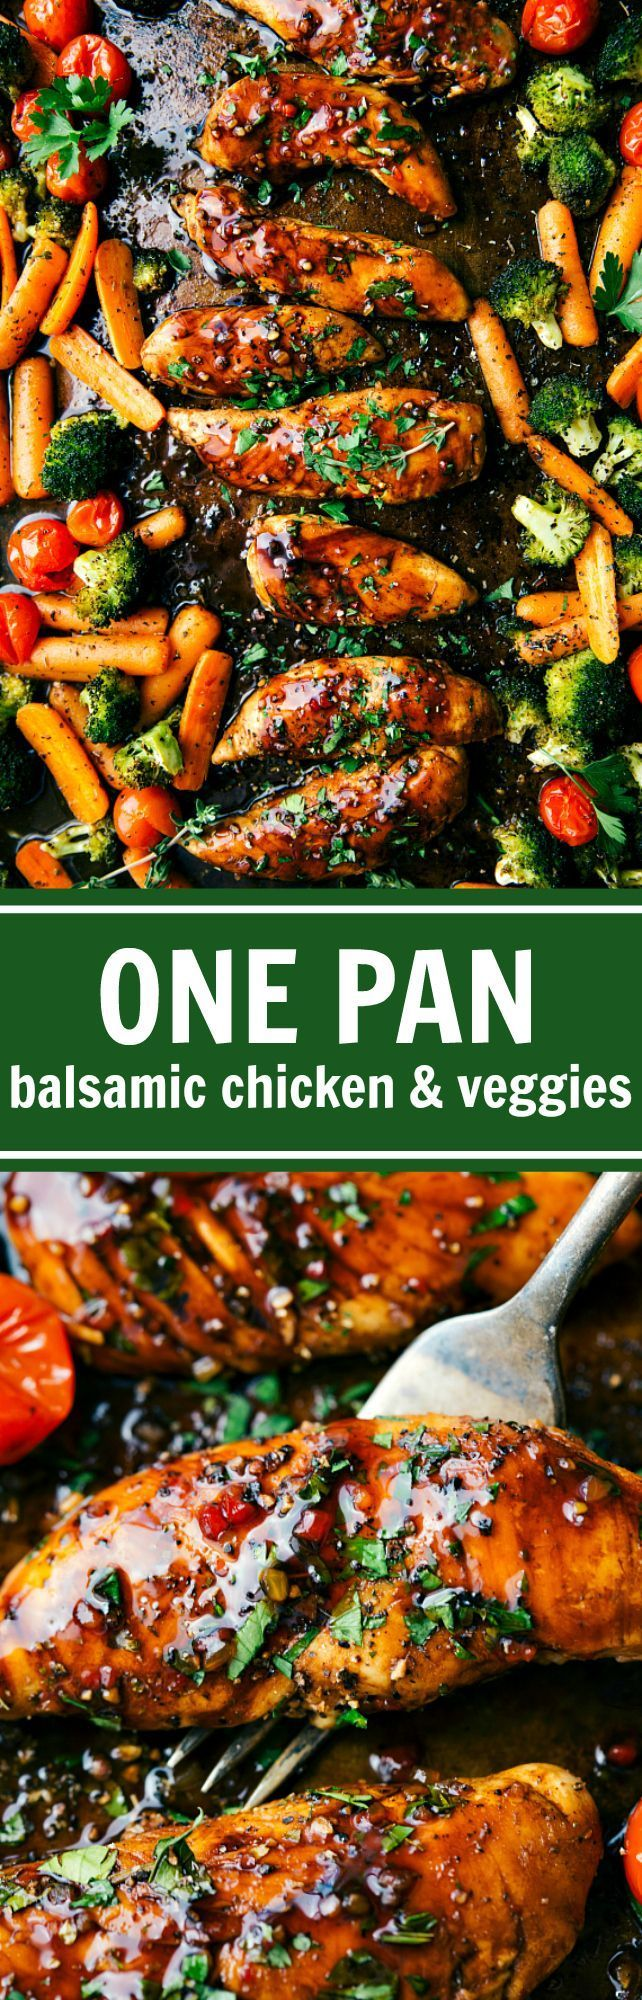 Sweet Balsamic chicken and veggies made in one pan. Ten minute prep and twenty minute cooking time -- this meal is efficient, healthy, and simple to make! via chelseasmessyapro...